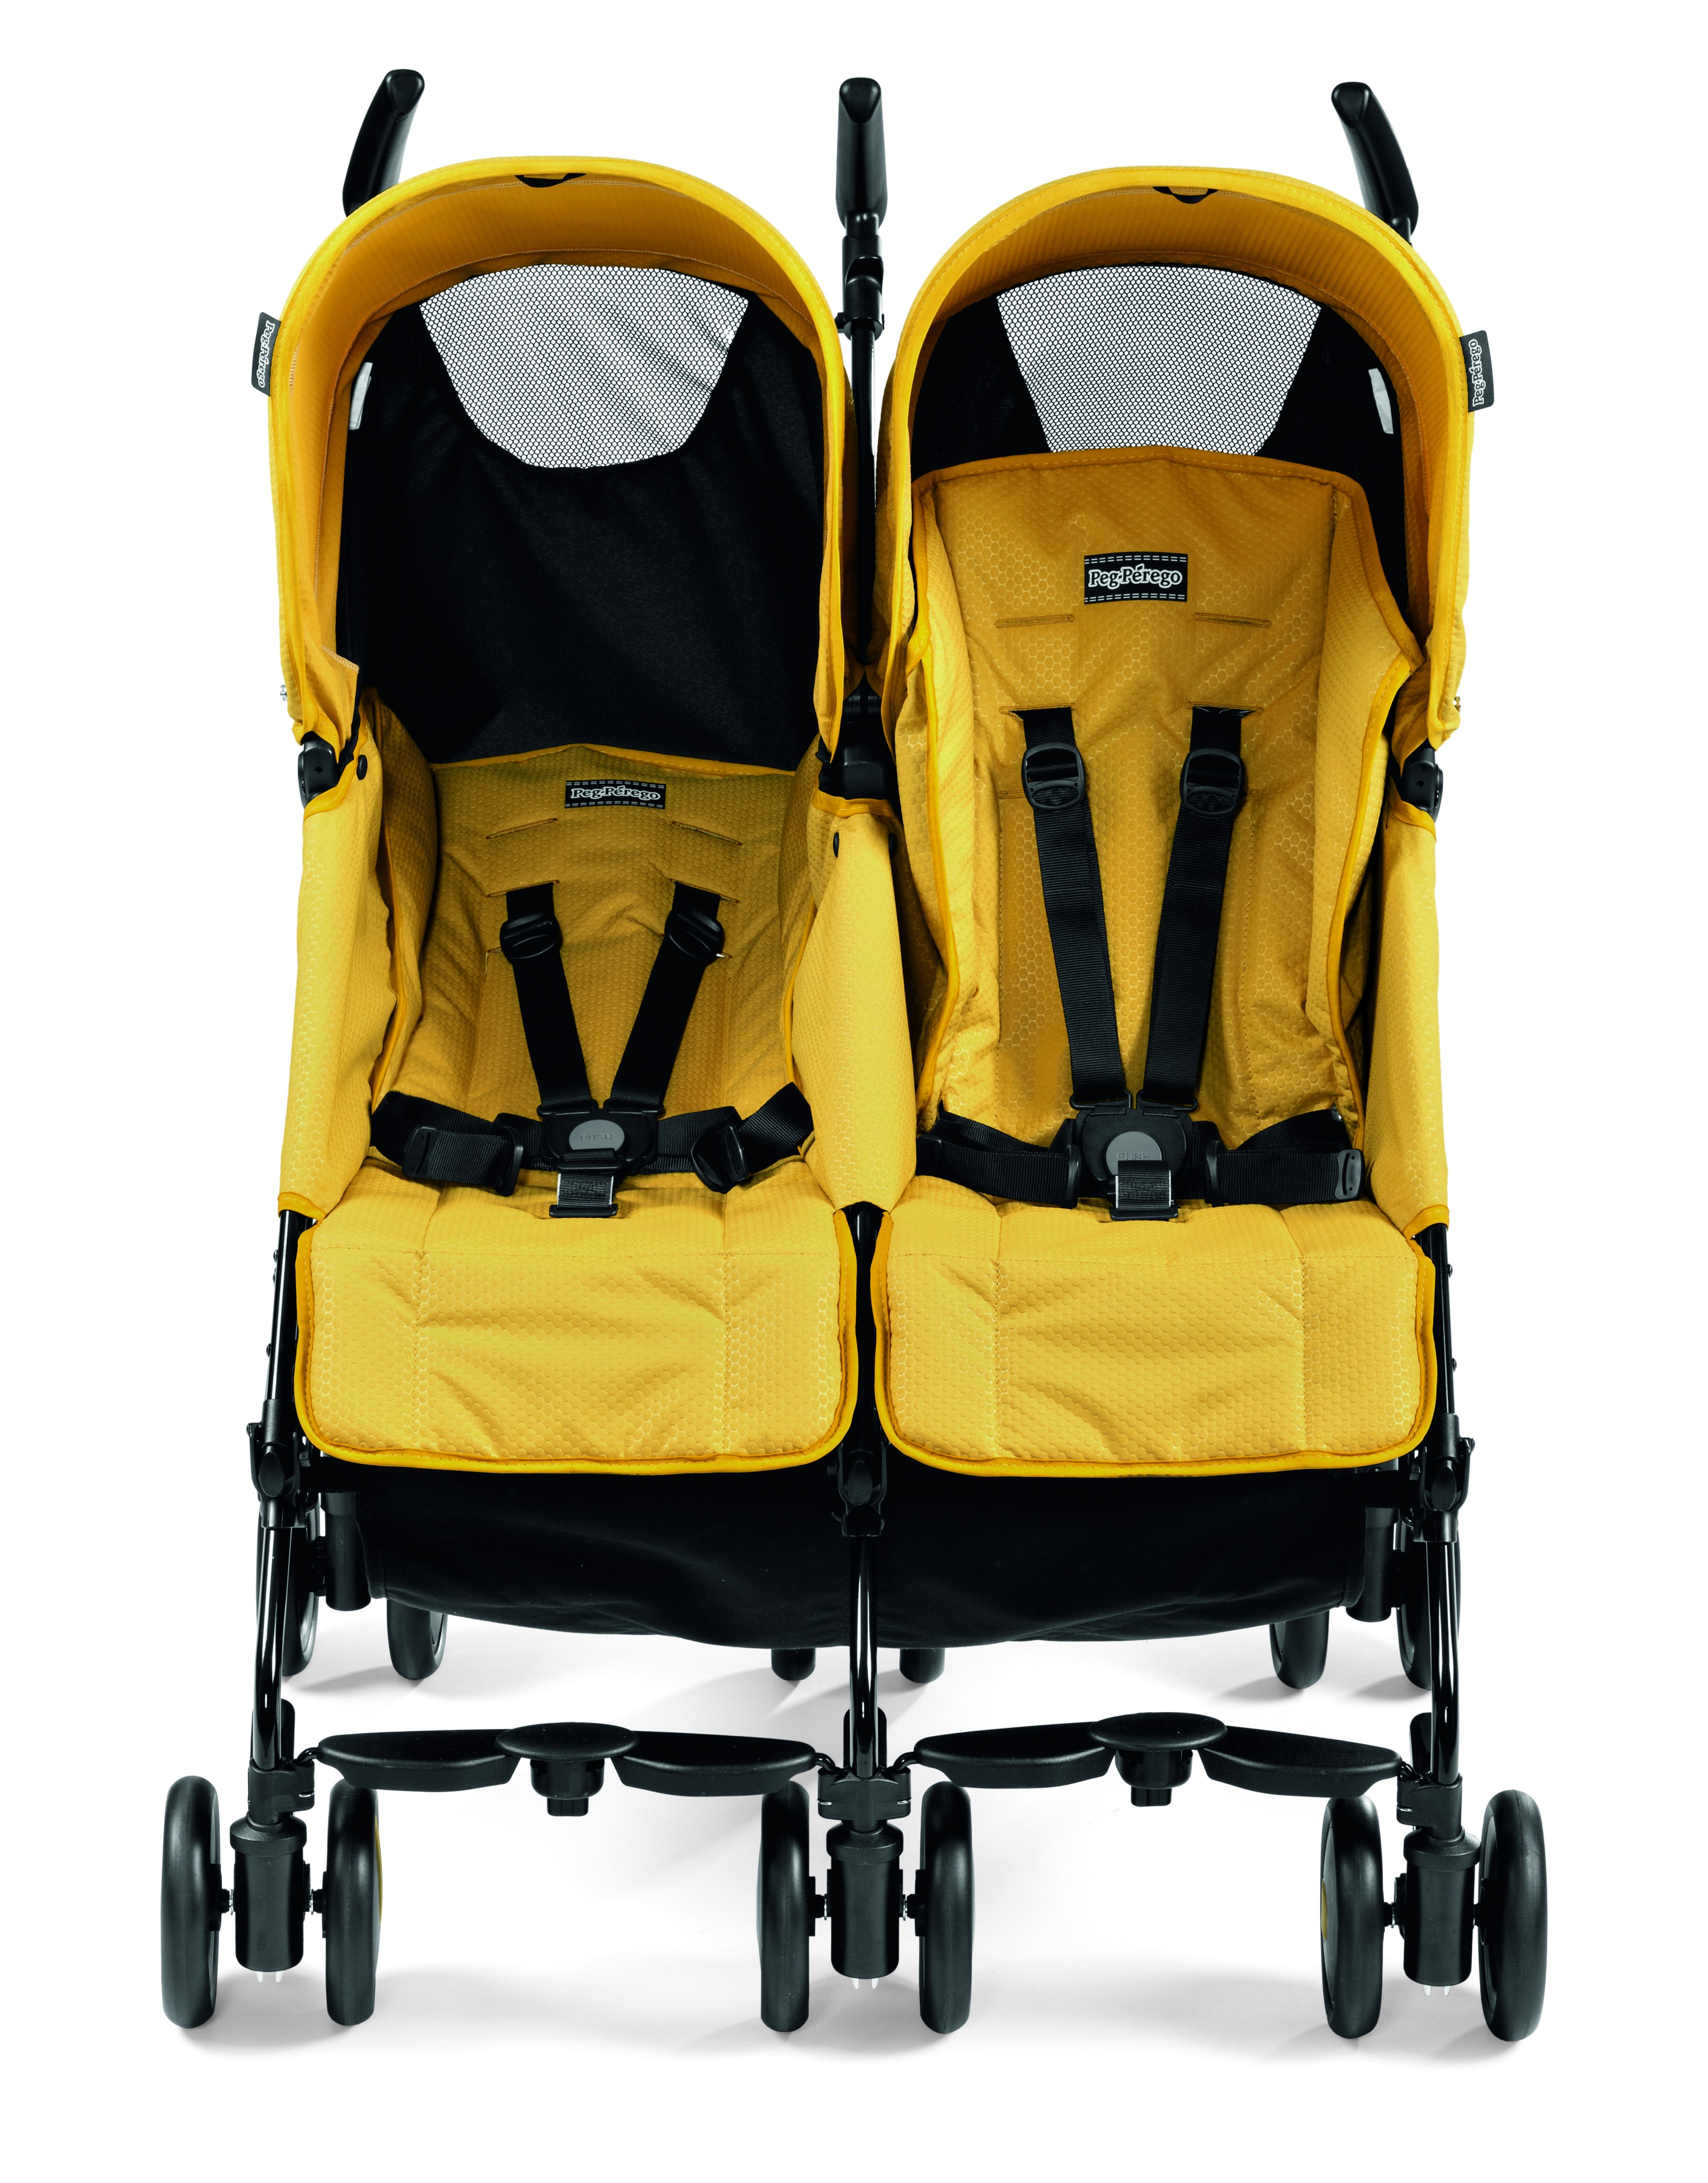 Peg Perego Stroller For Twins Peg Perego Pliko Mini Twin Leightweight Double Stroller Mod Yellow